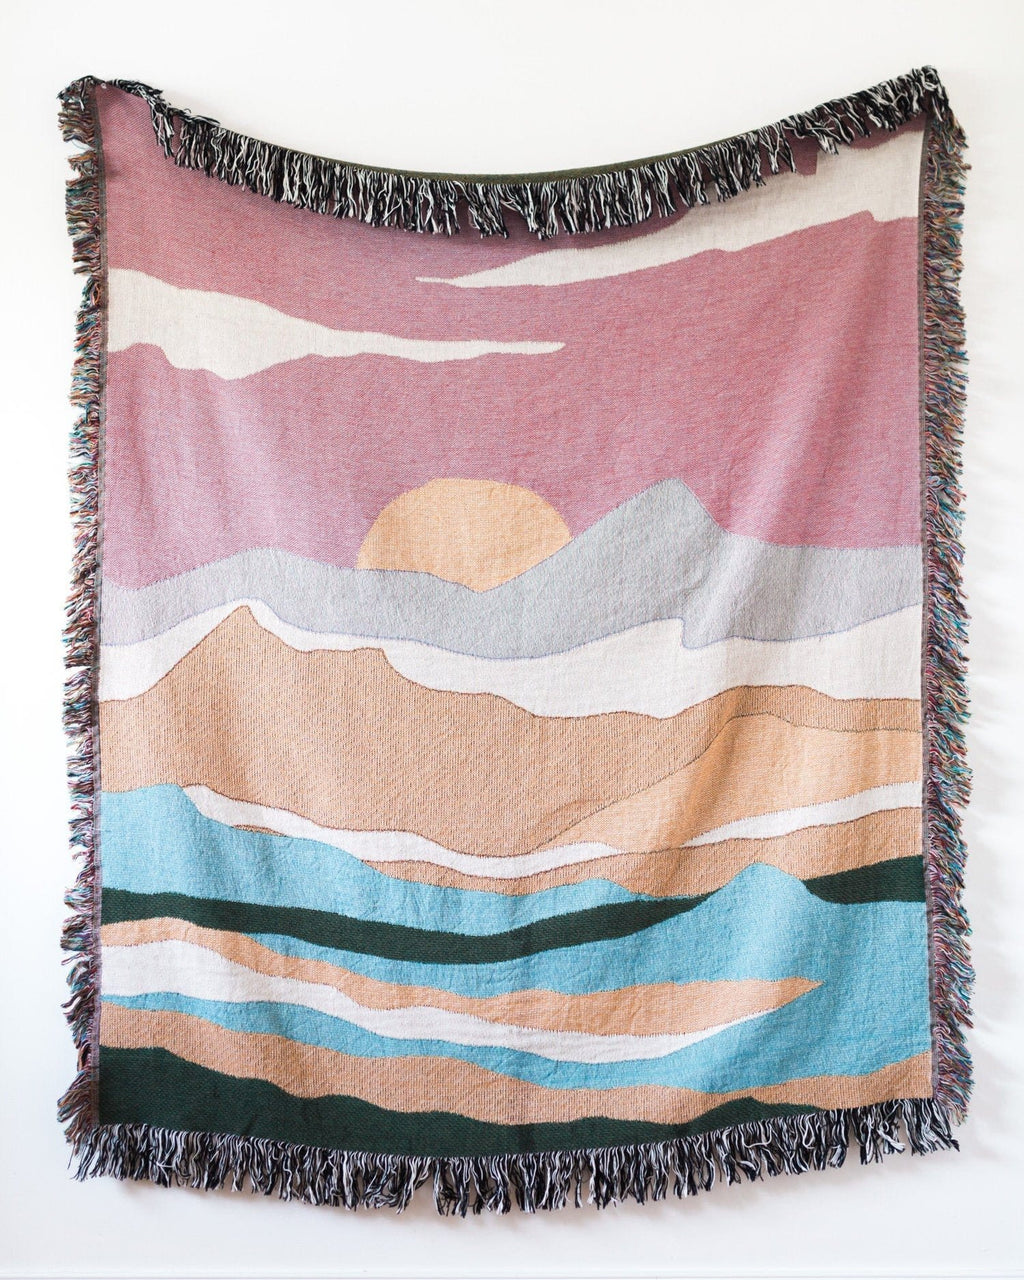 Pink Landscape Throw Blanket